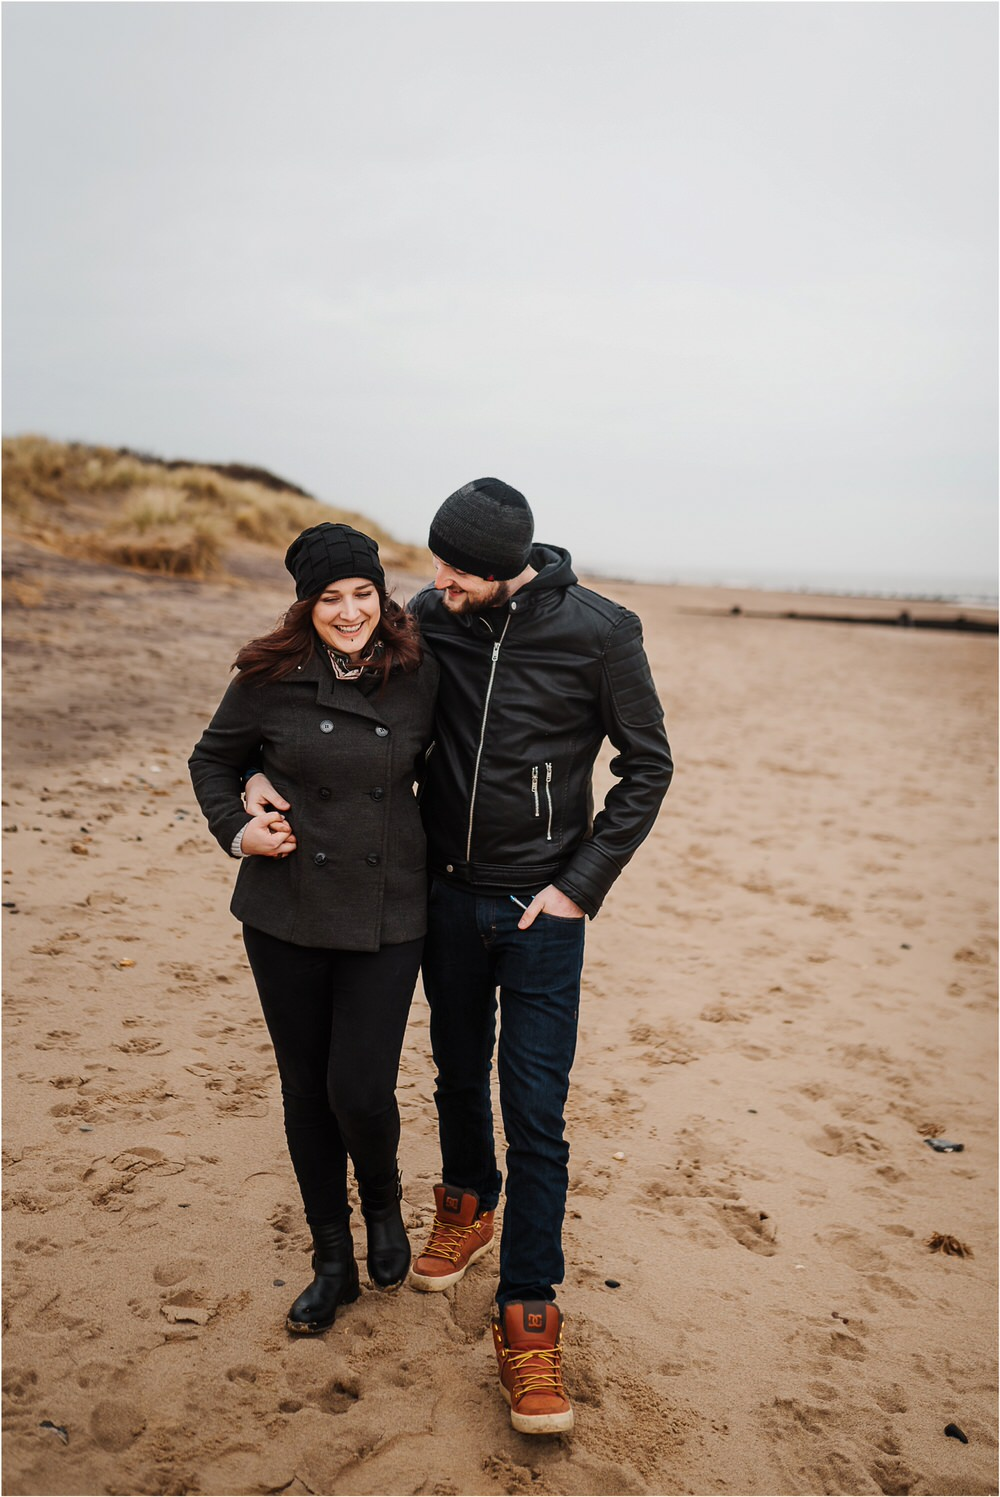 skegness uk england great britain photographer wedding engagement session photoshoot lincolnshire recommended photography 0049.jpg